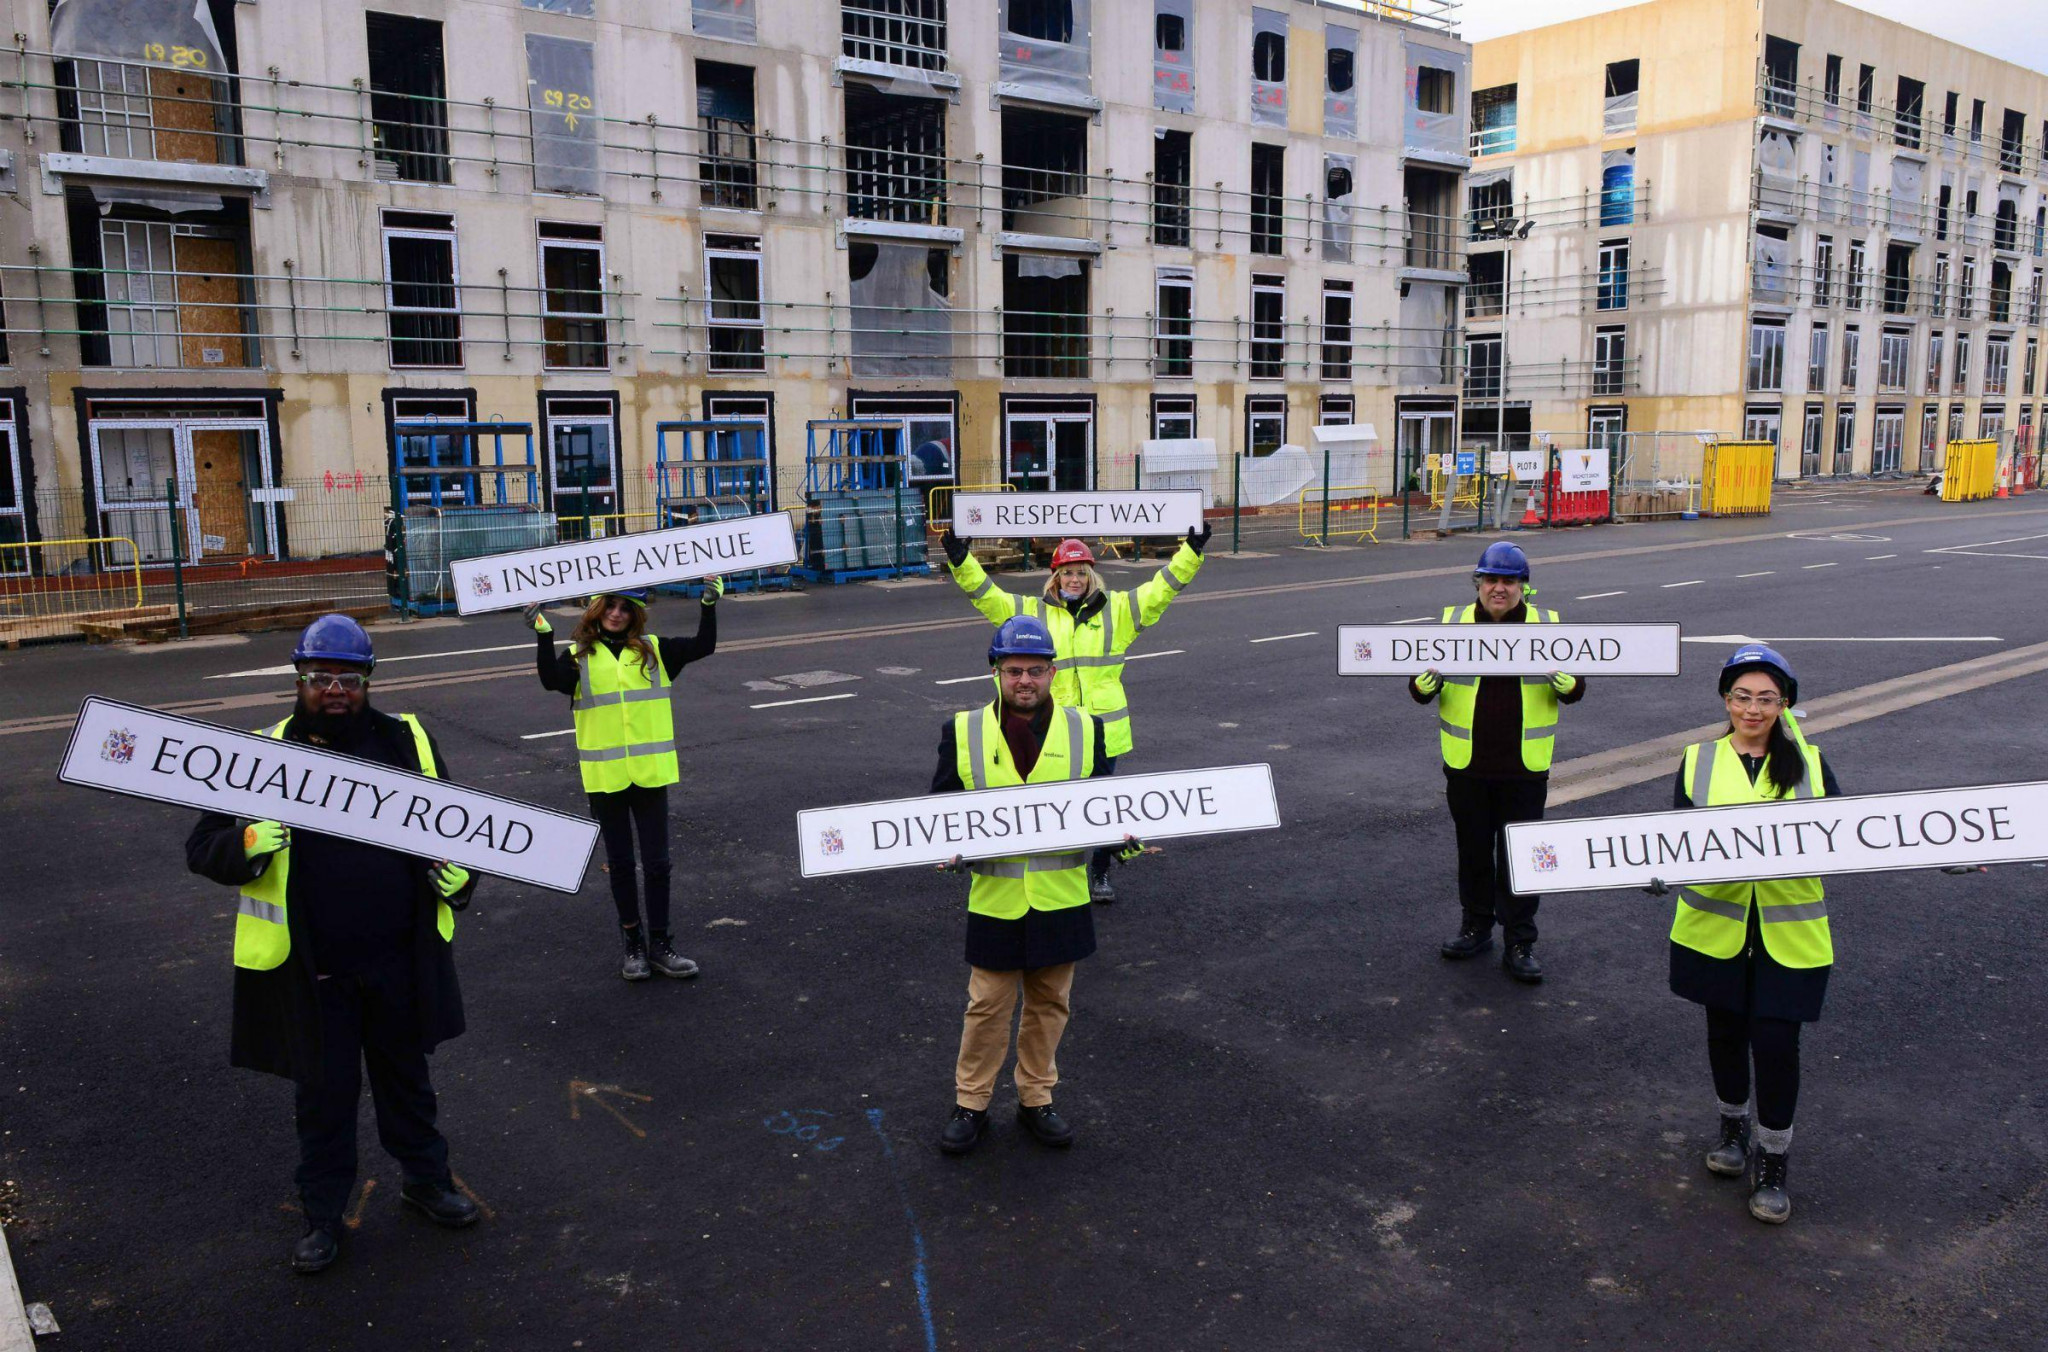 Six new street names have been unveiled as the build-up to the Birmingham 2022 Commonwealth Games continues ©Birmingham 2022